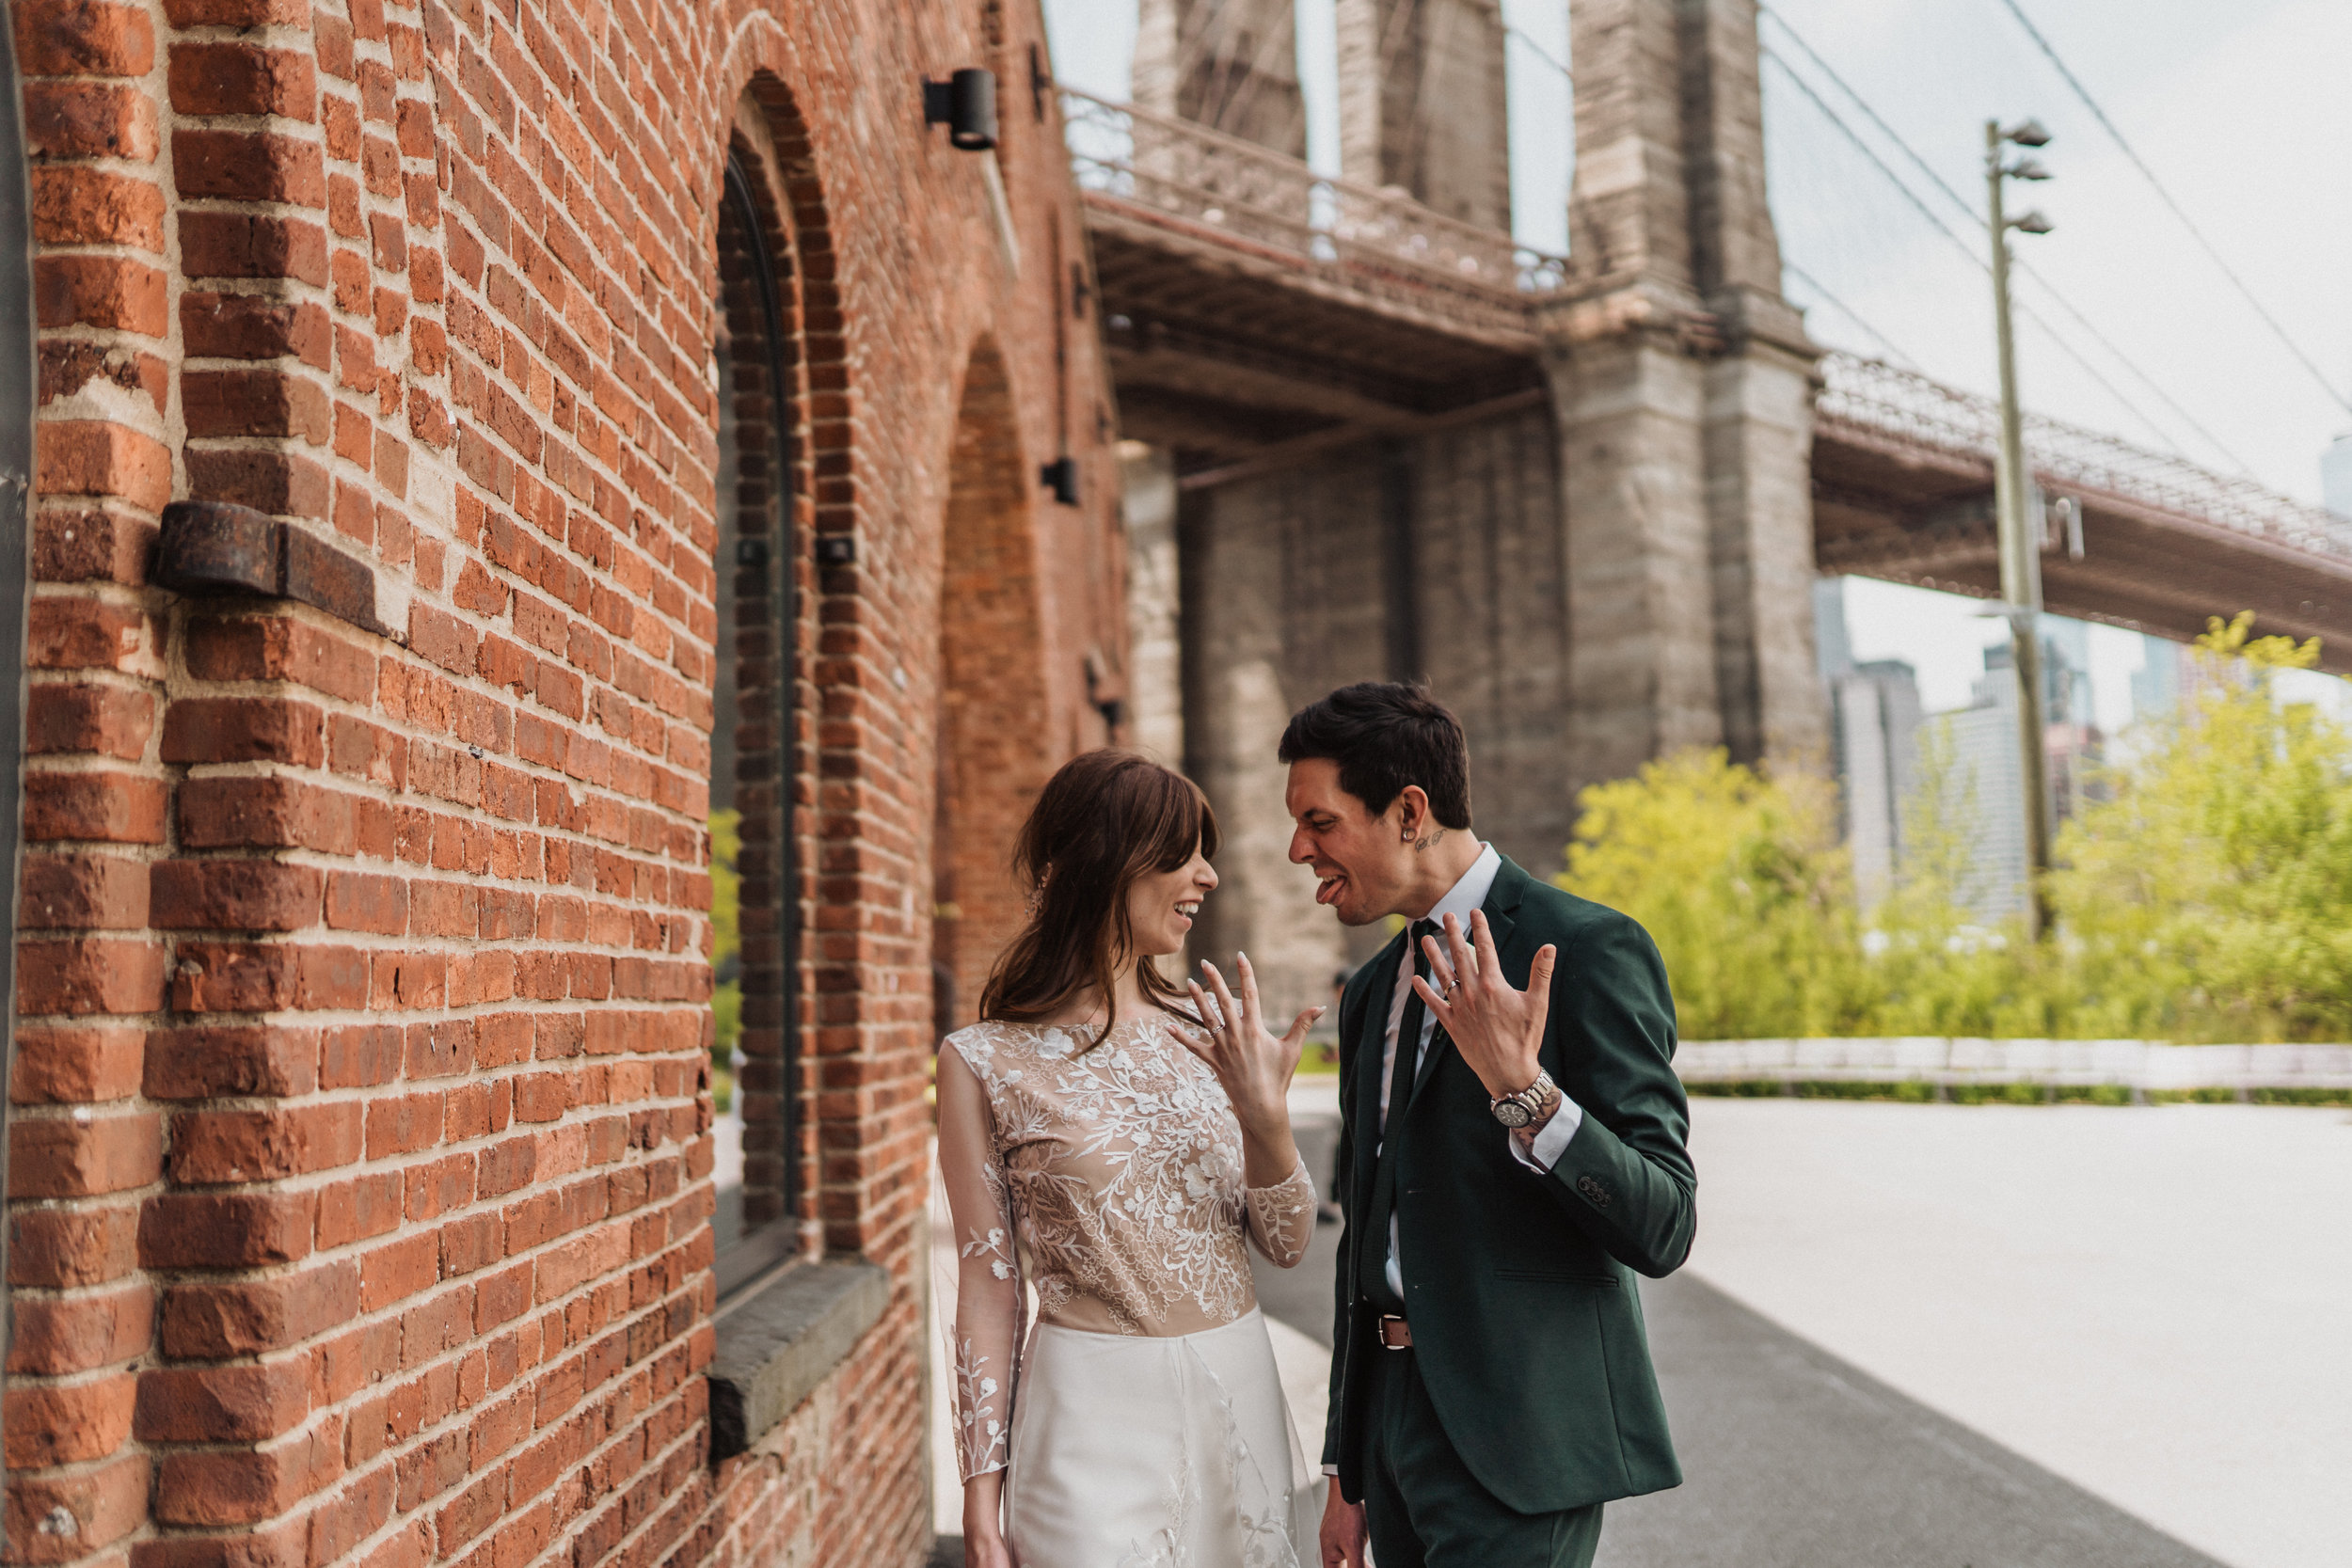 Lauren&Adam sneak-May 08, 2019-5.jpg